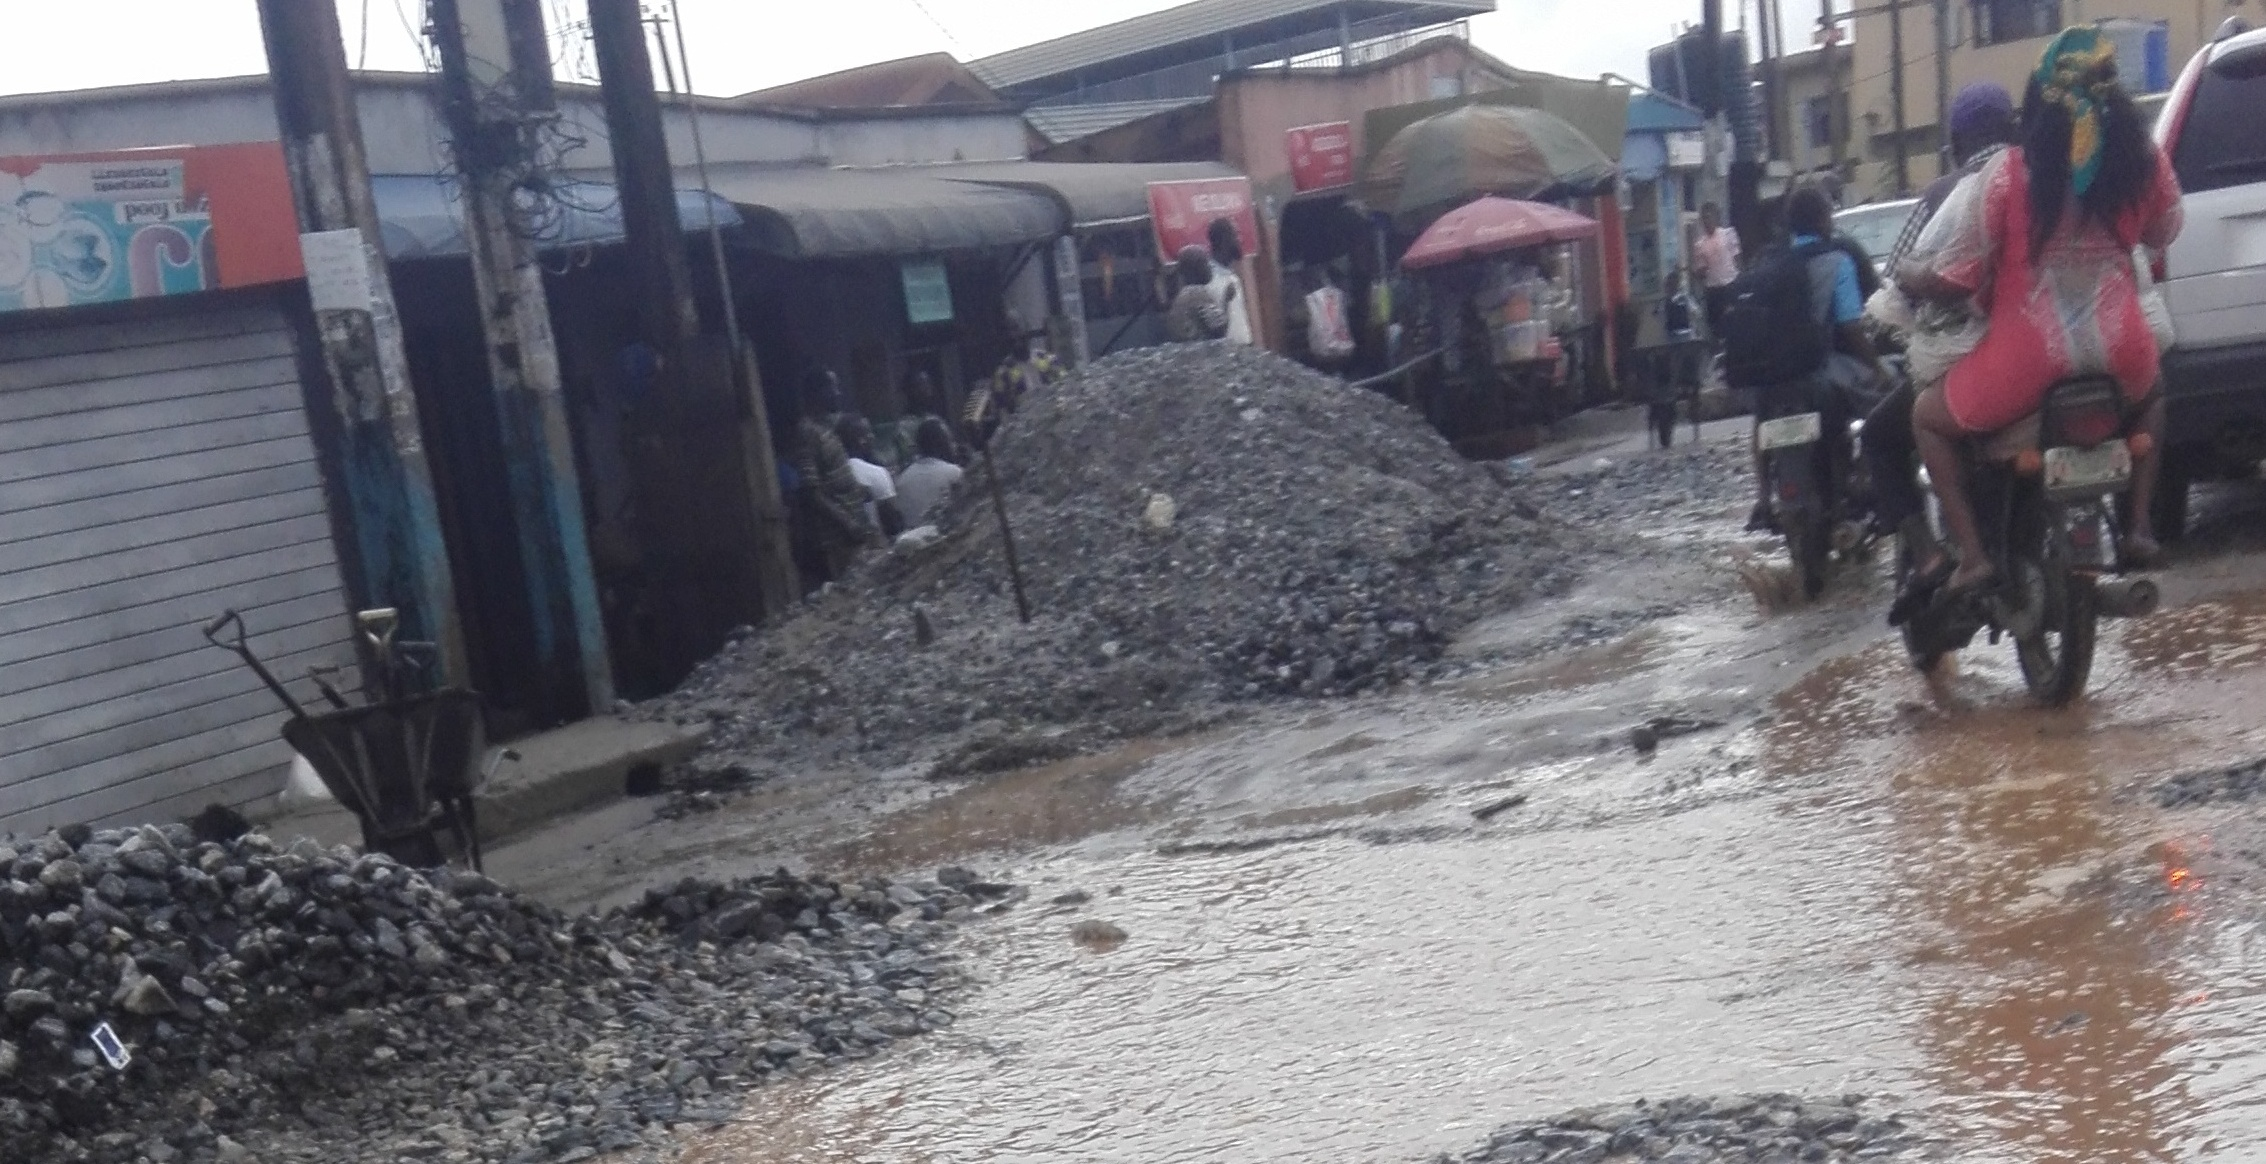 Road rehabilitation work carried out in the rain